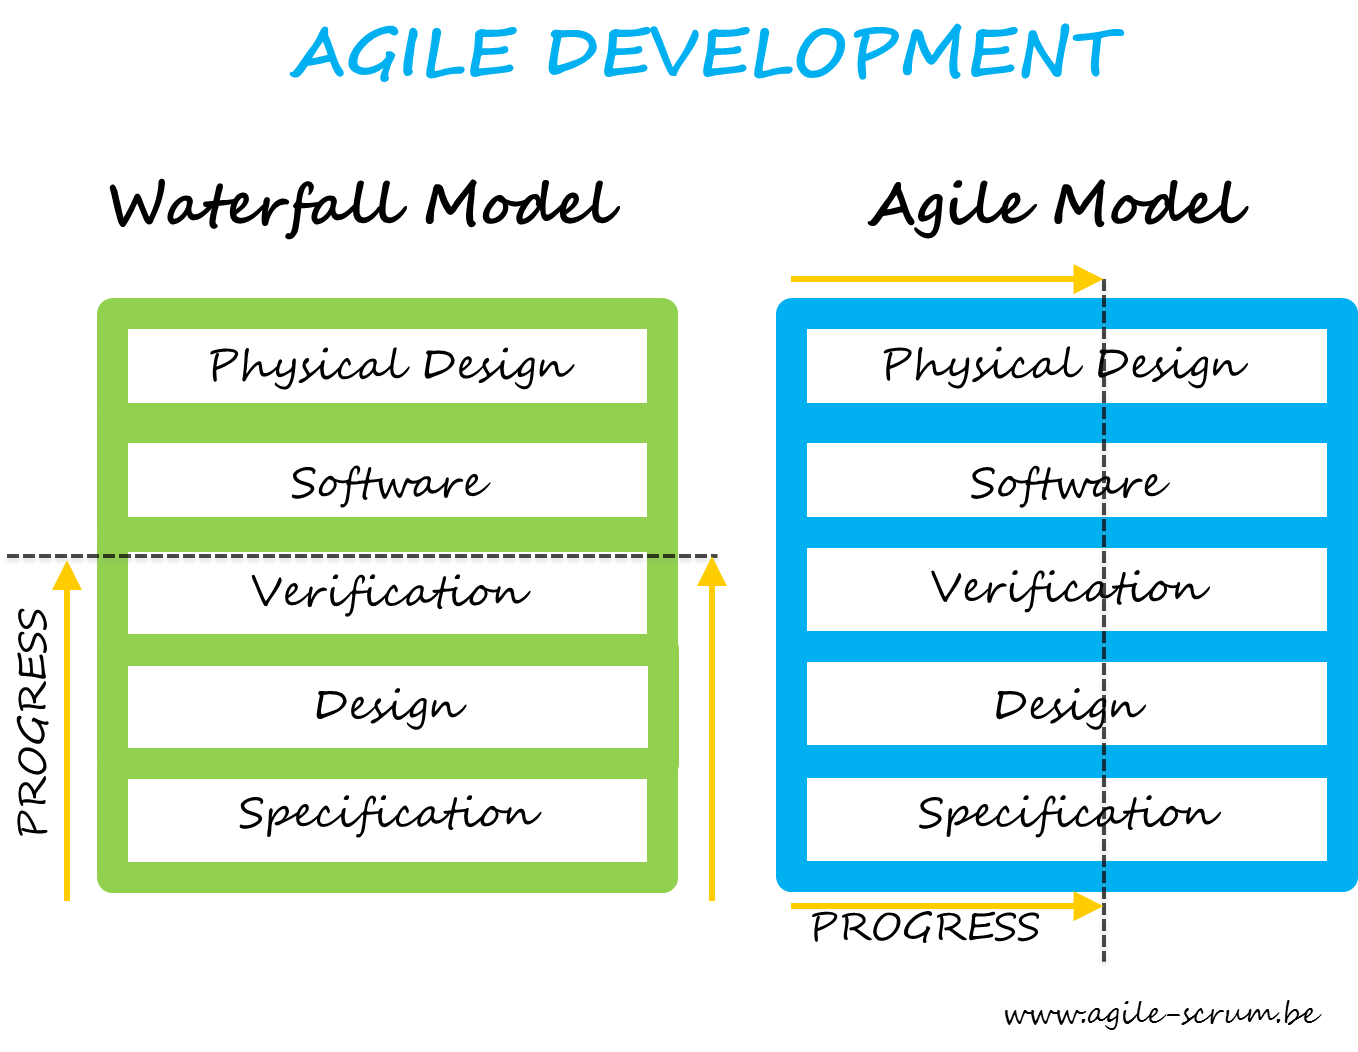 Agile development agile scrum for Agile vs traditional methodologies